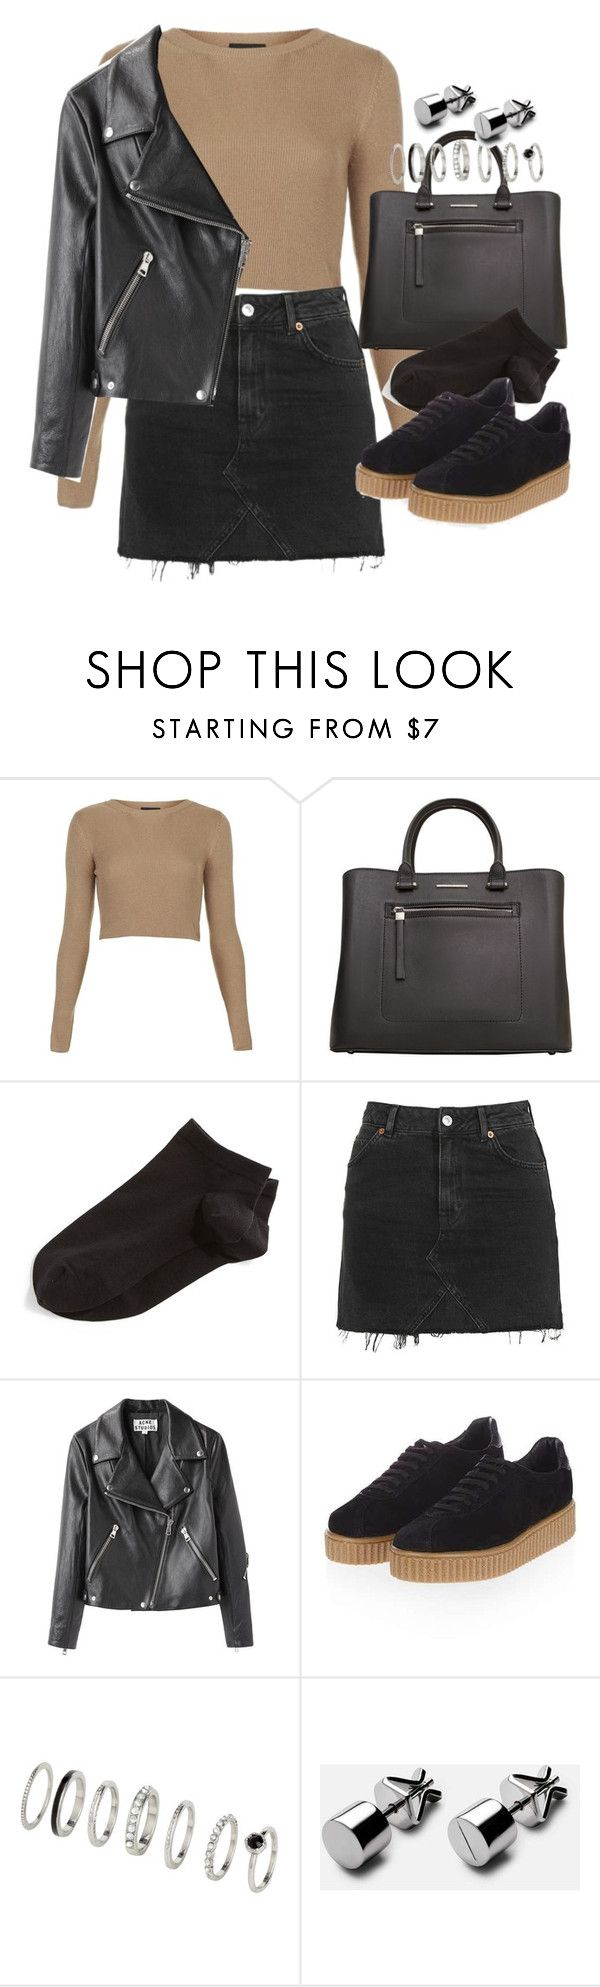 """outfit with a denim skirt and puma creepers"" by ferned on Polyvore featuring Topshop, MANGO, Wolford and Acne Studios"